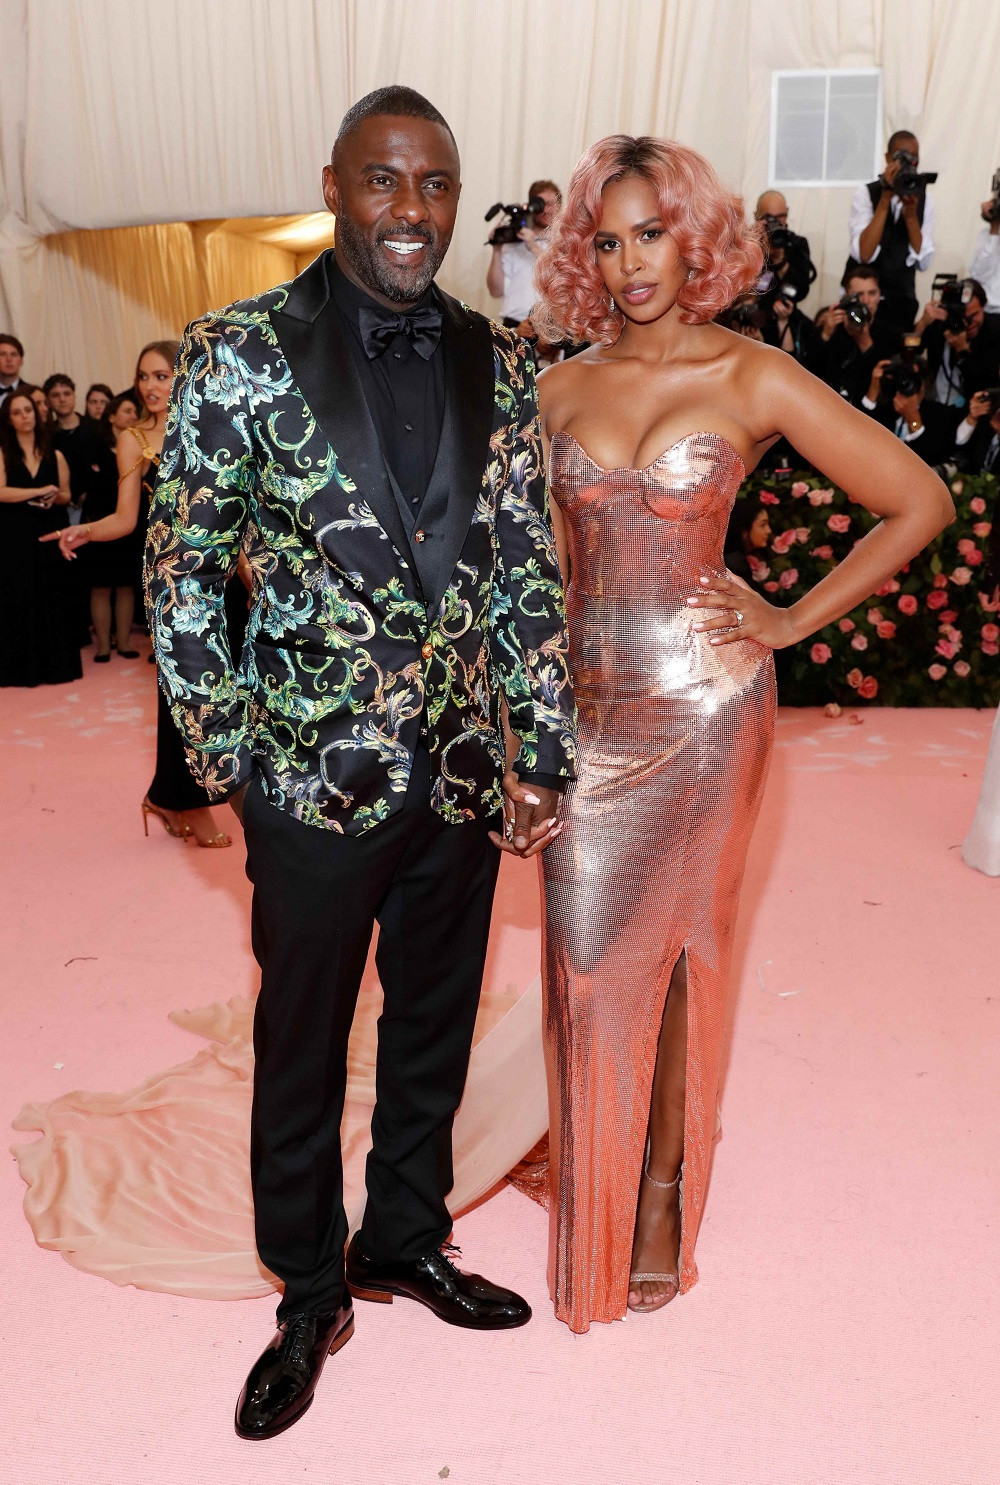 Idris Elba and Sabrina Dhowre at the Metropolitan Museum of Art Costume Institute Gala in New York City, US, on May 6, 2019.